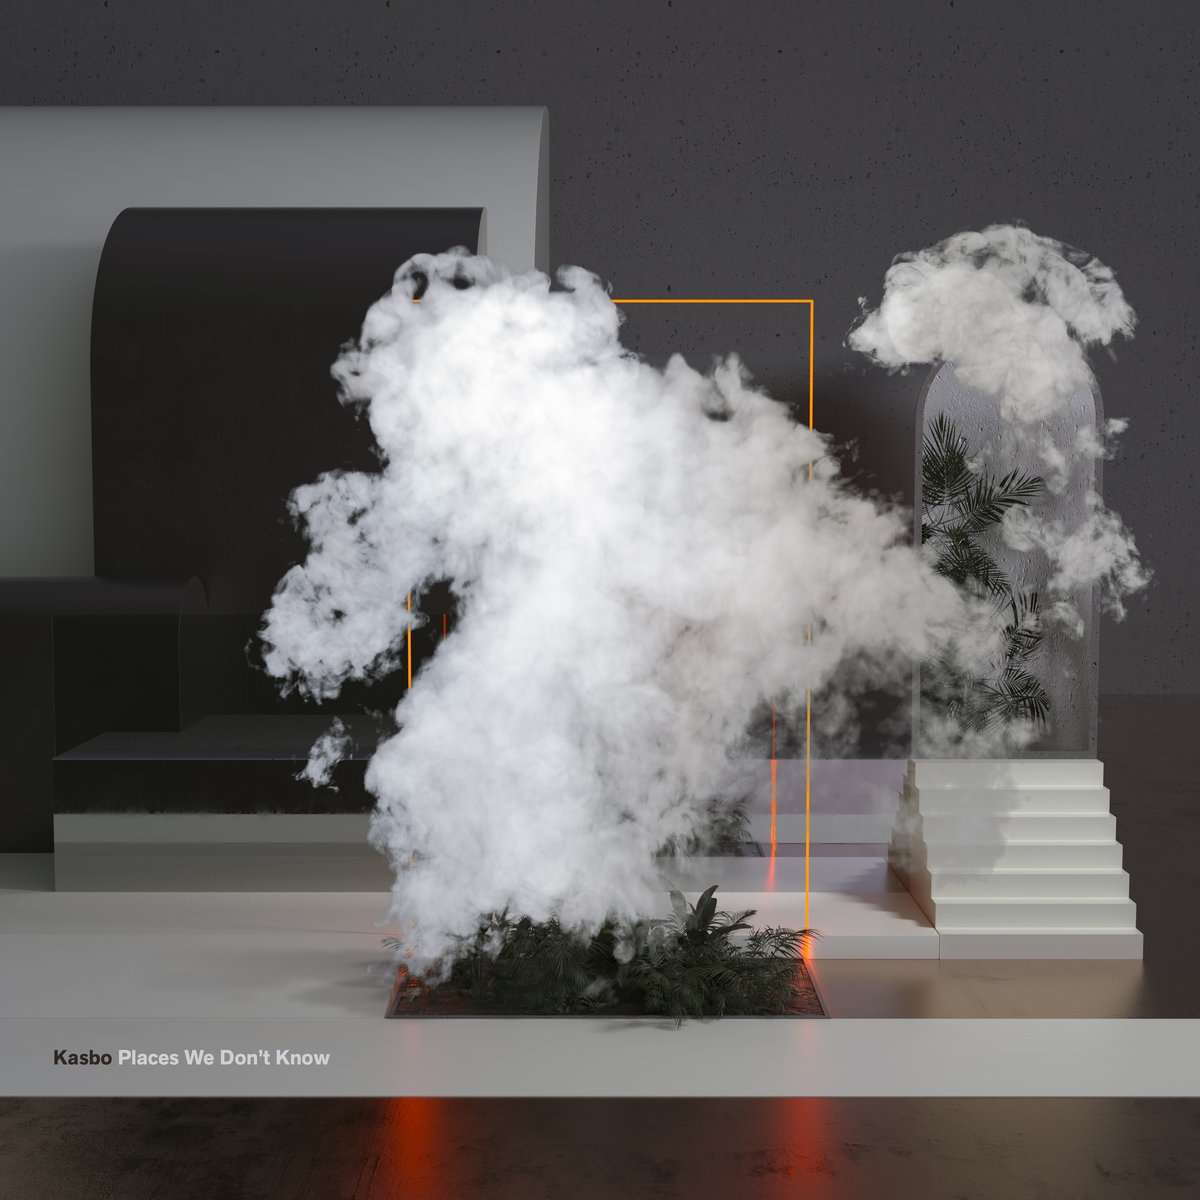 "<p class=""sid"">FFC028</p><p>Kasbo - 'Places We Don't Know' </p>"